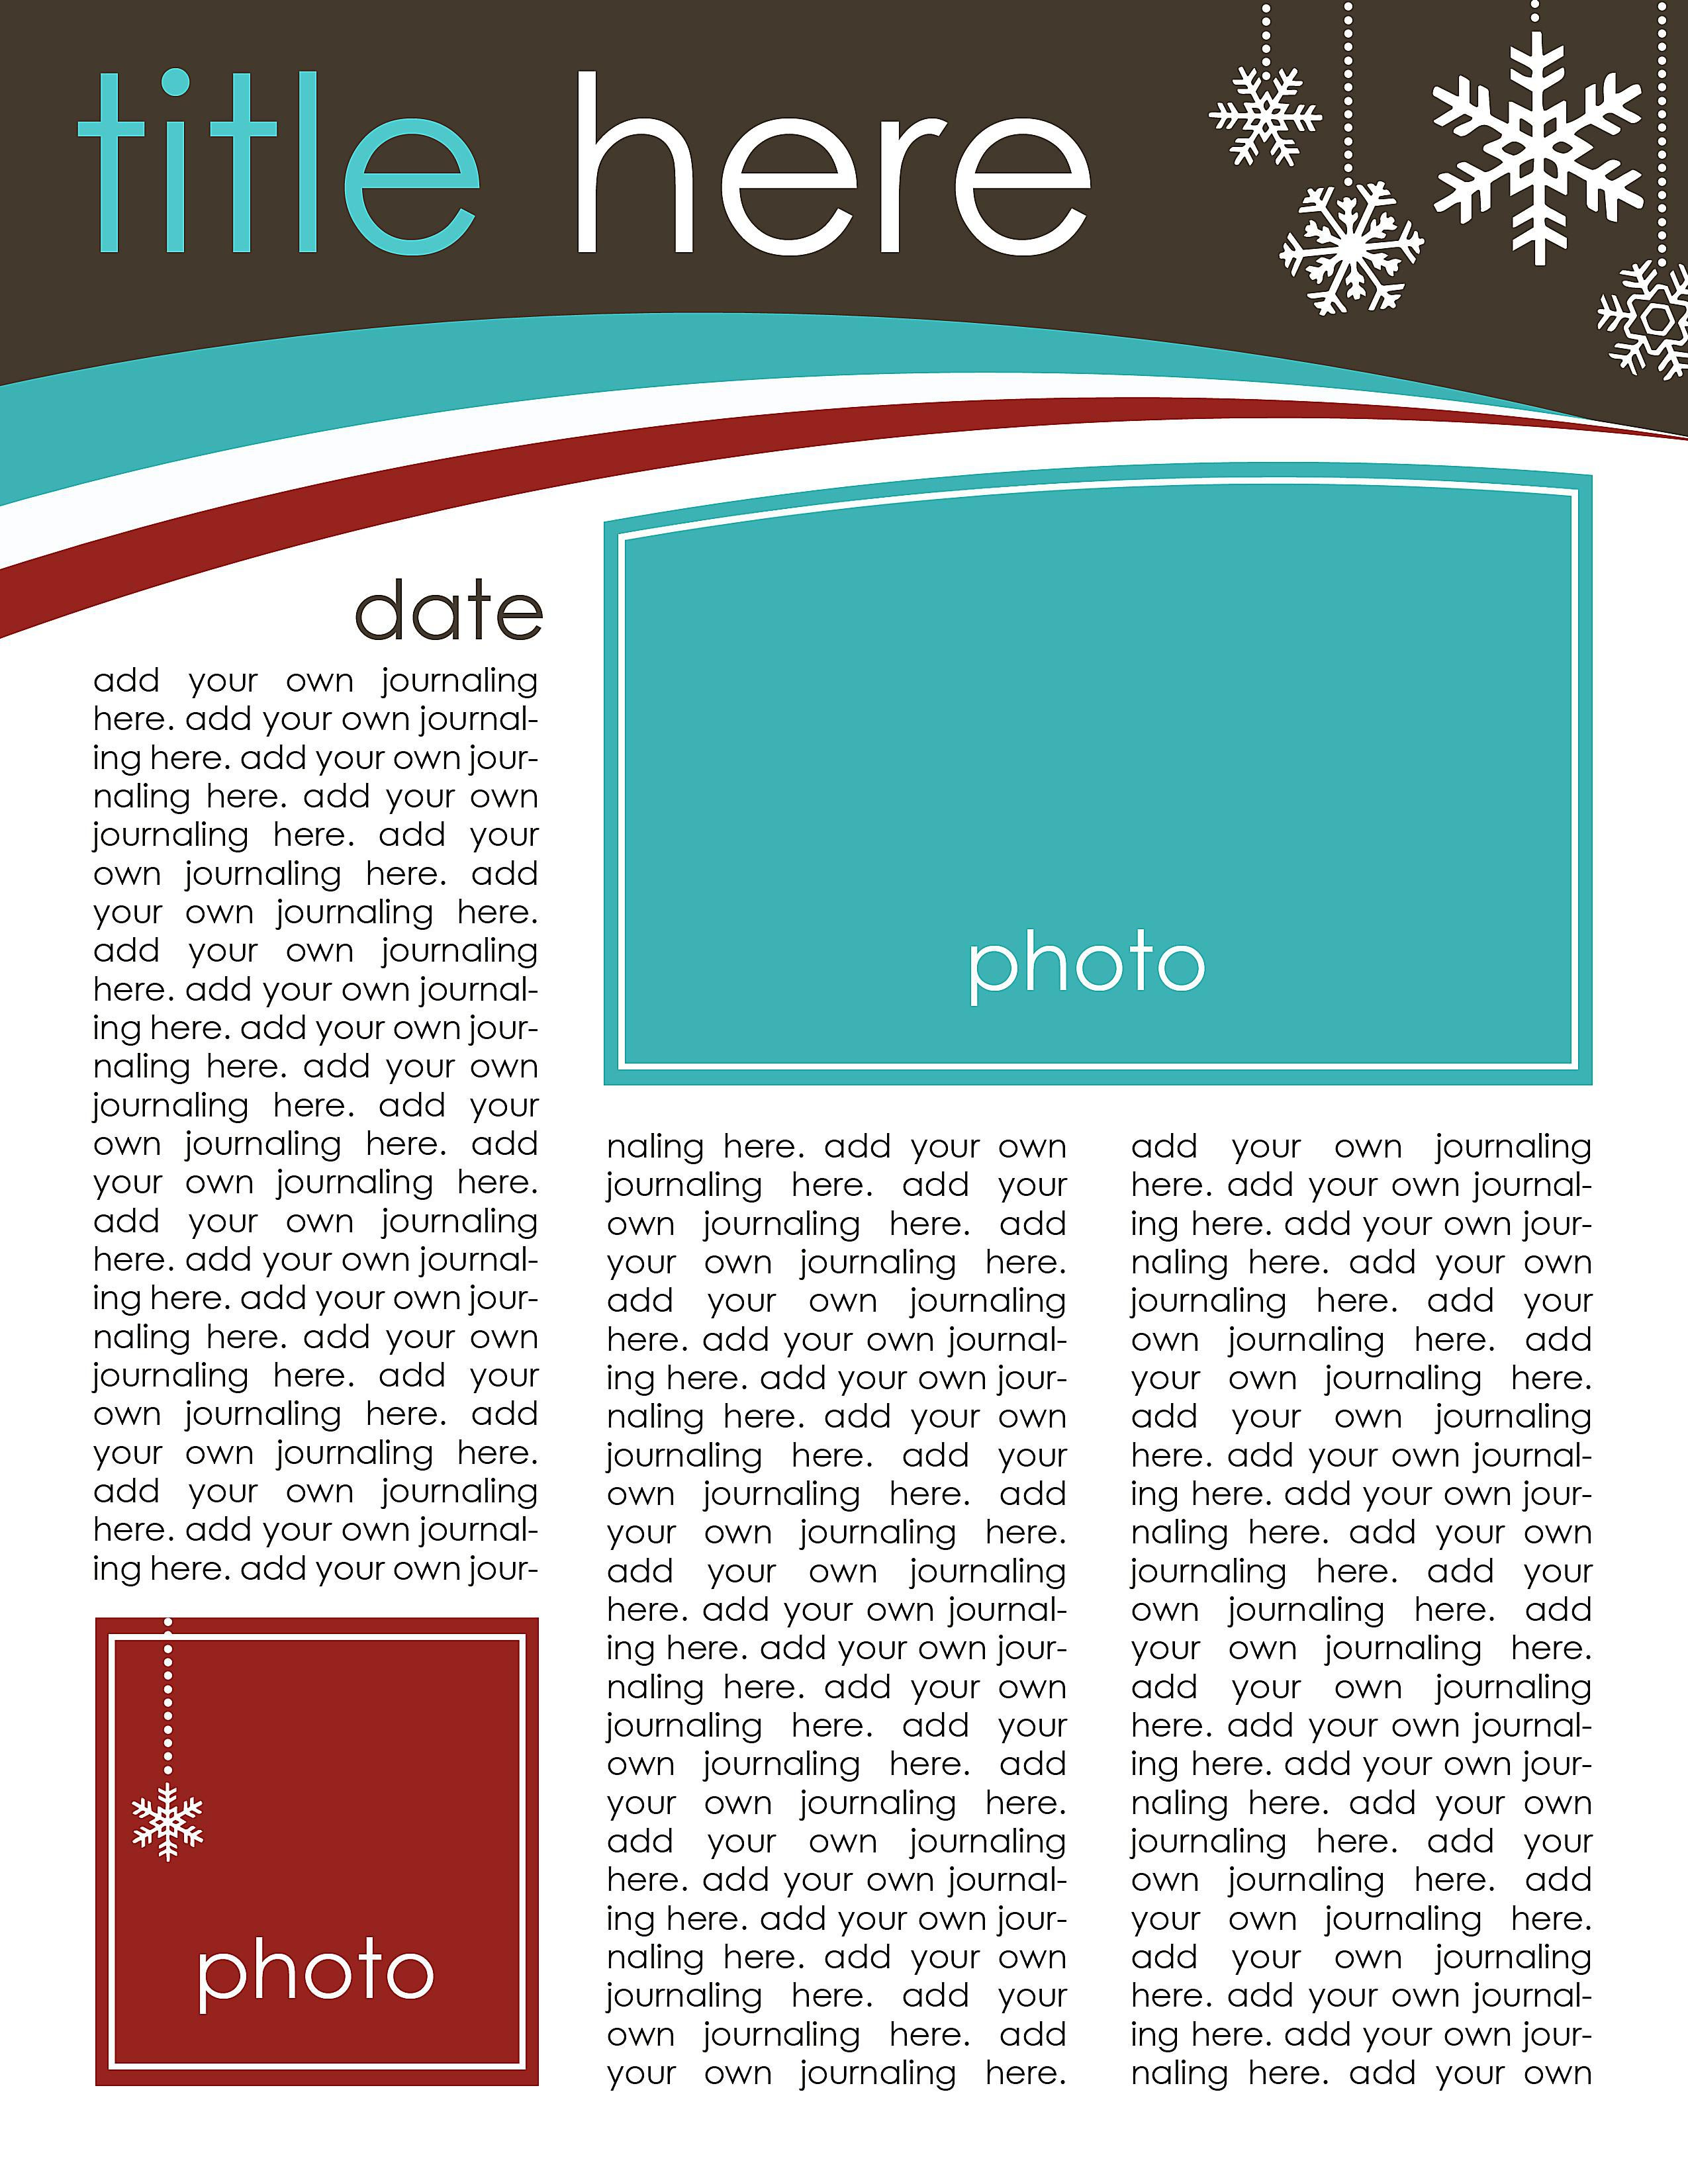 49 Free Christmas Letter Templates That You\'ll Love